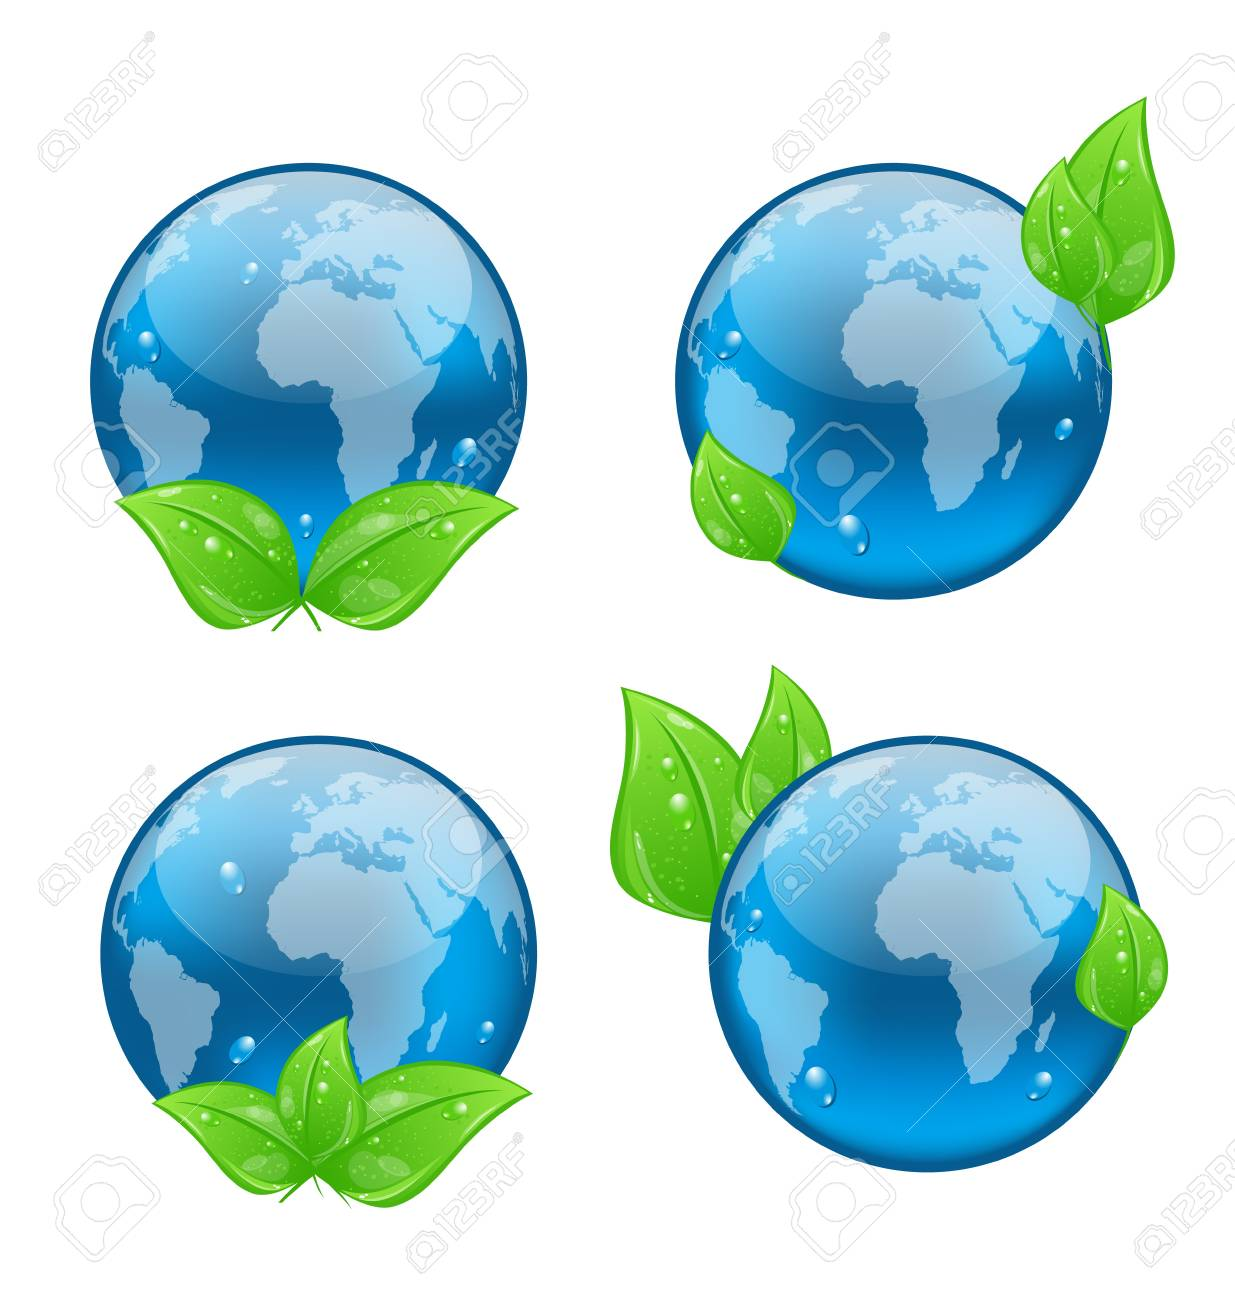 Illustration set icon earth with green leaves isolated on white background, environment symbols - vector Stock Illustration - 19676336